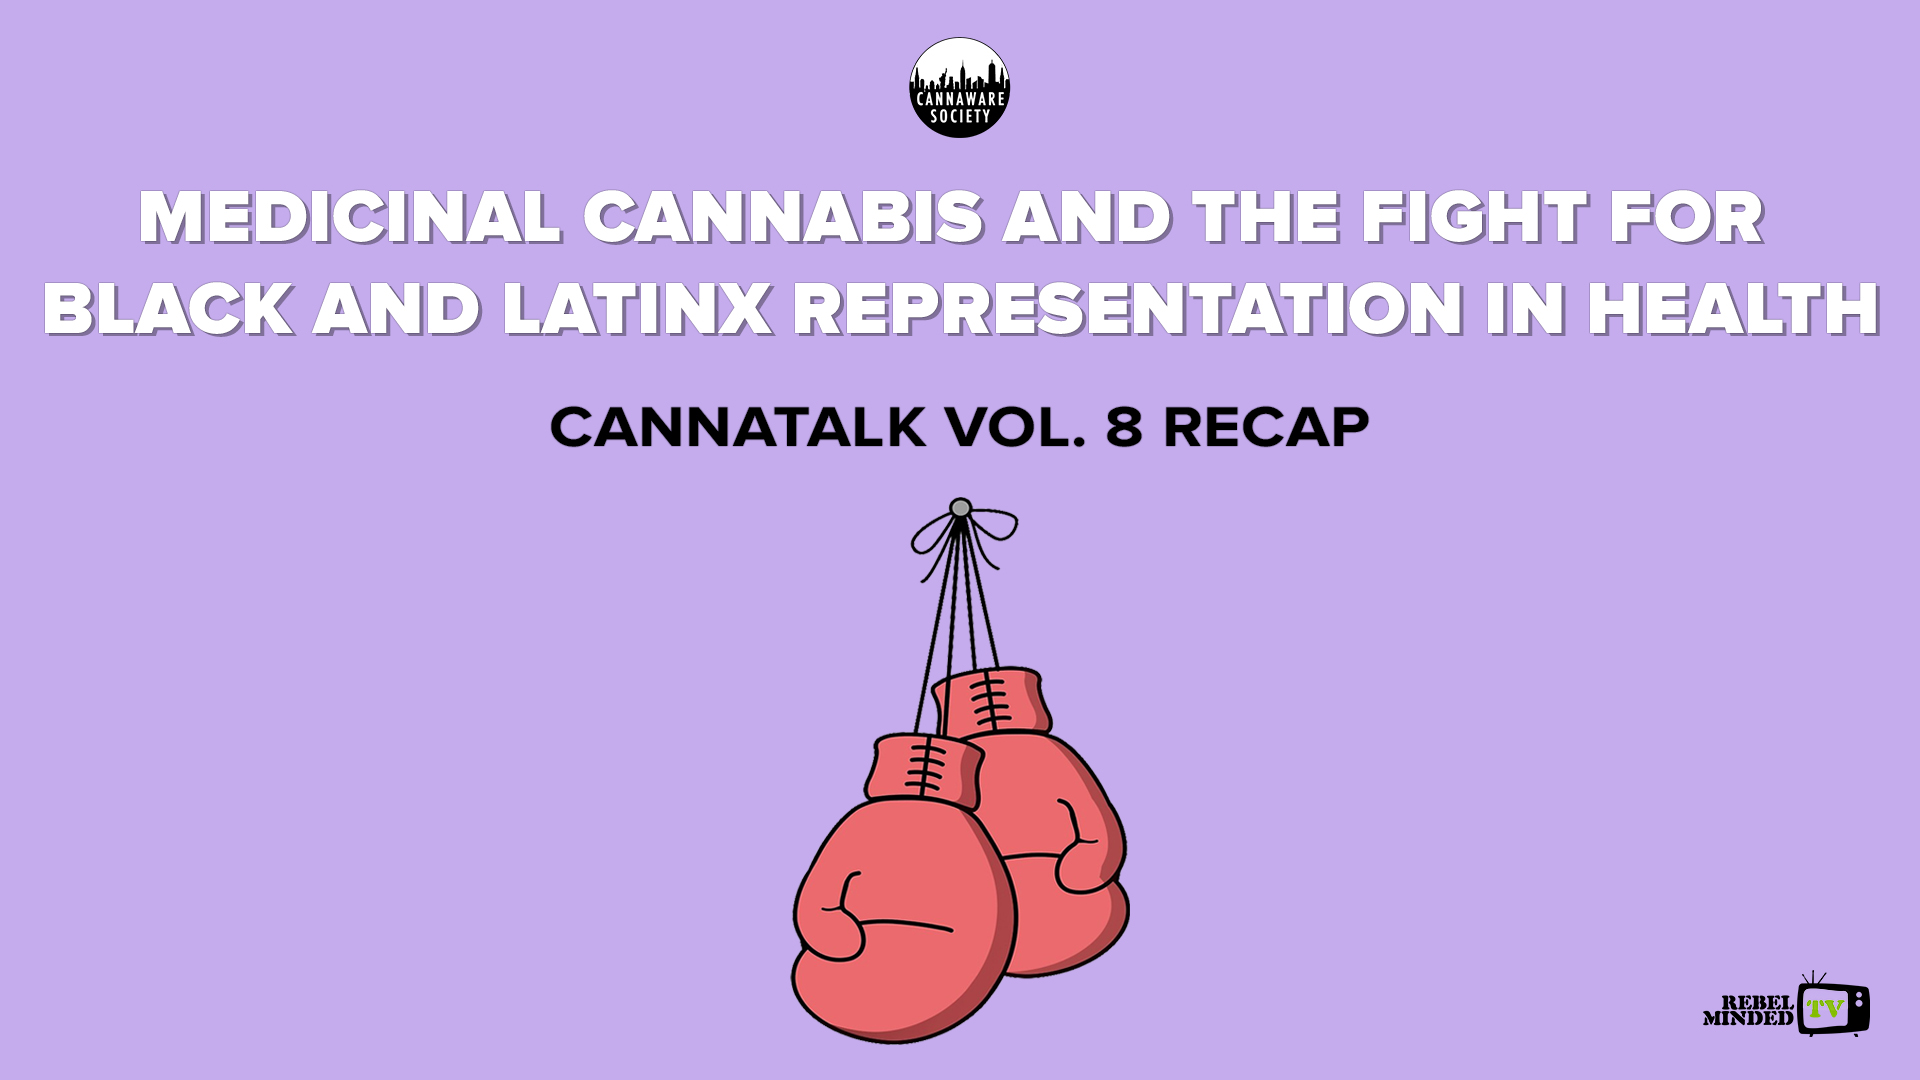 Cannatalk Vol. 8 – Medicinal Cannabis And The Fight For Black And Latinx Representation In Health